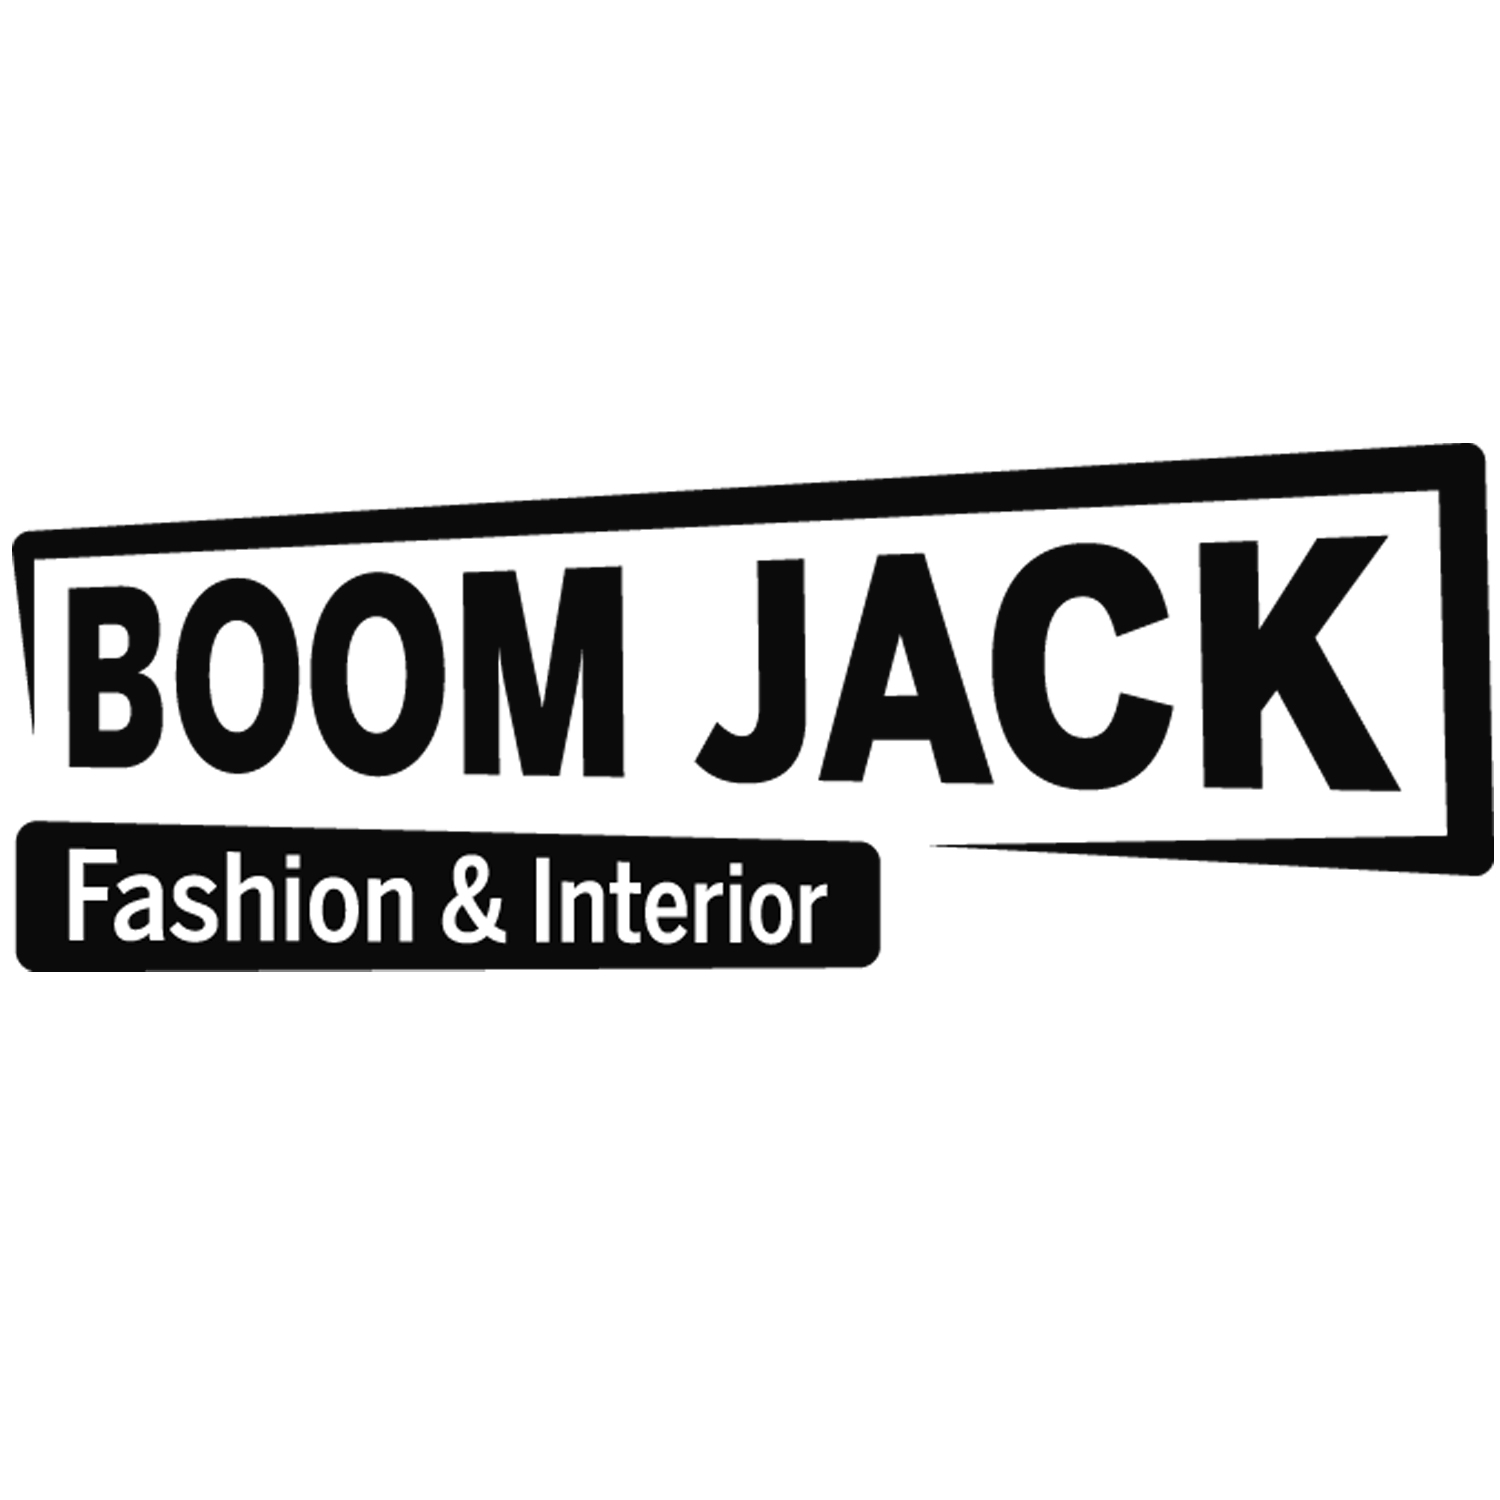 Boom Jack Fashion & Interior